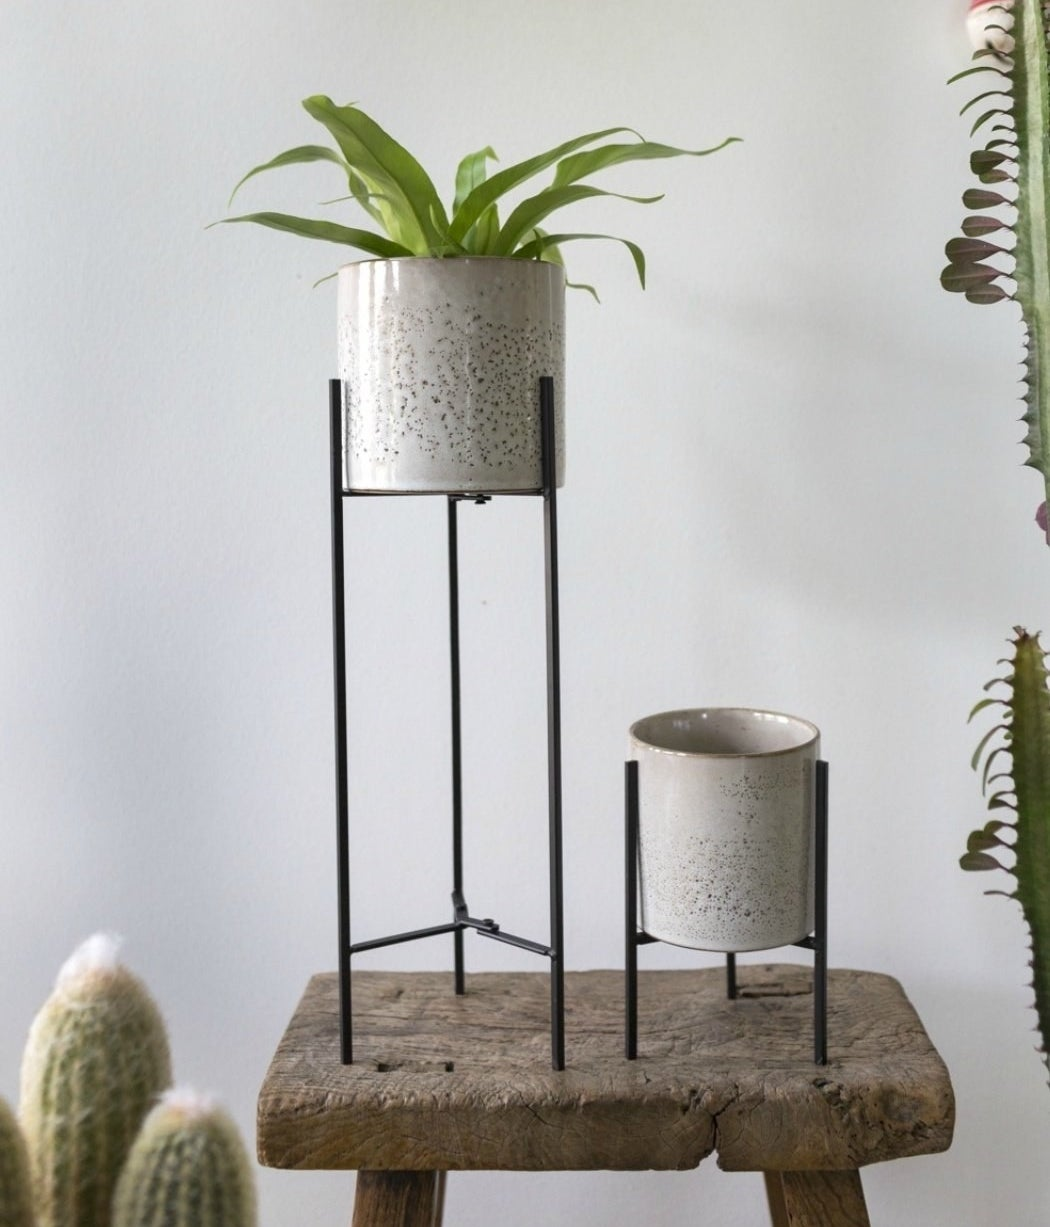 The black plant stand